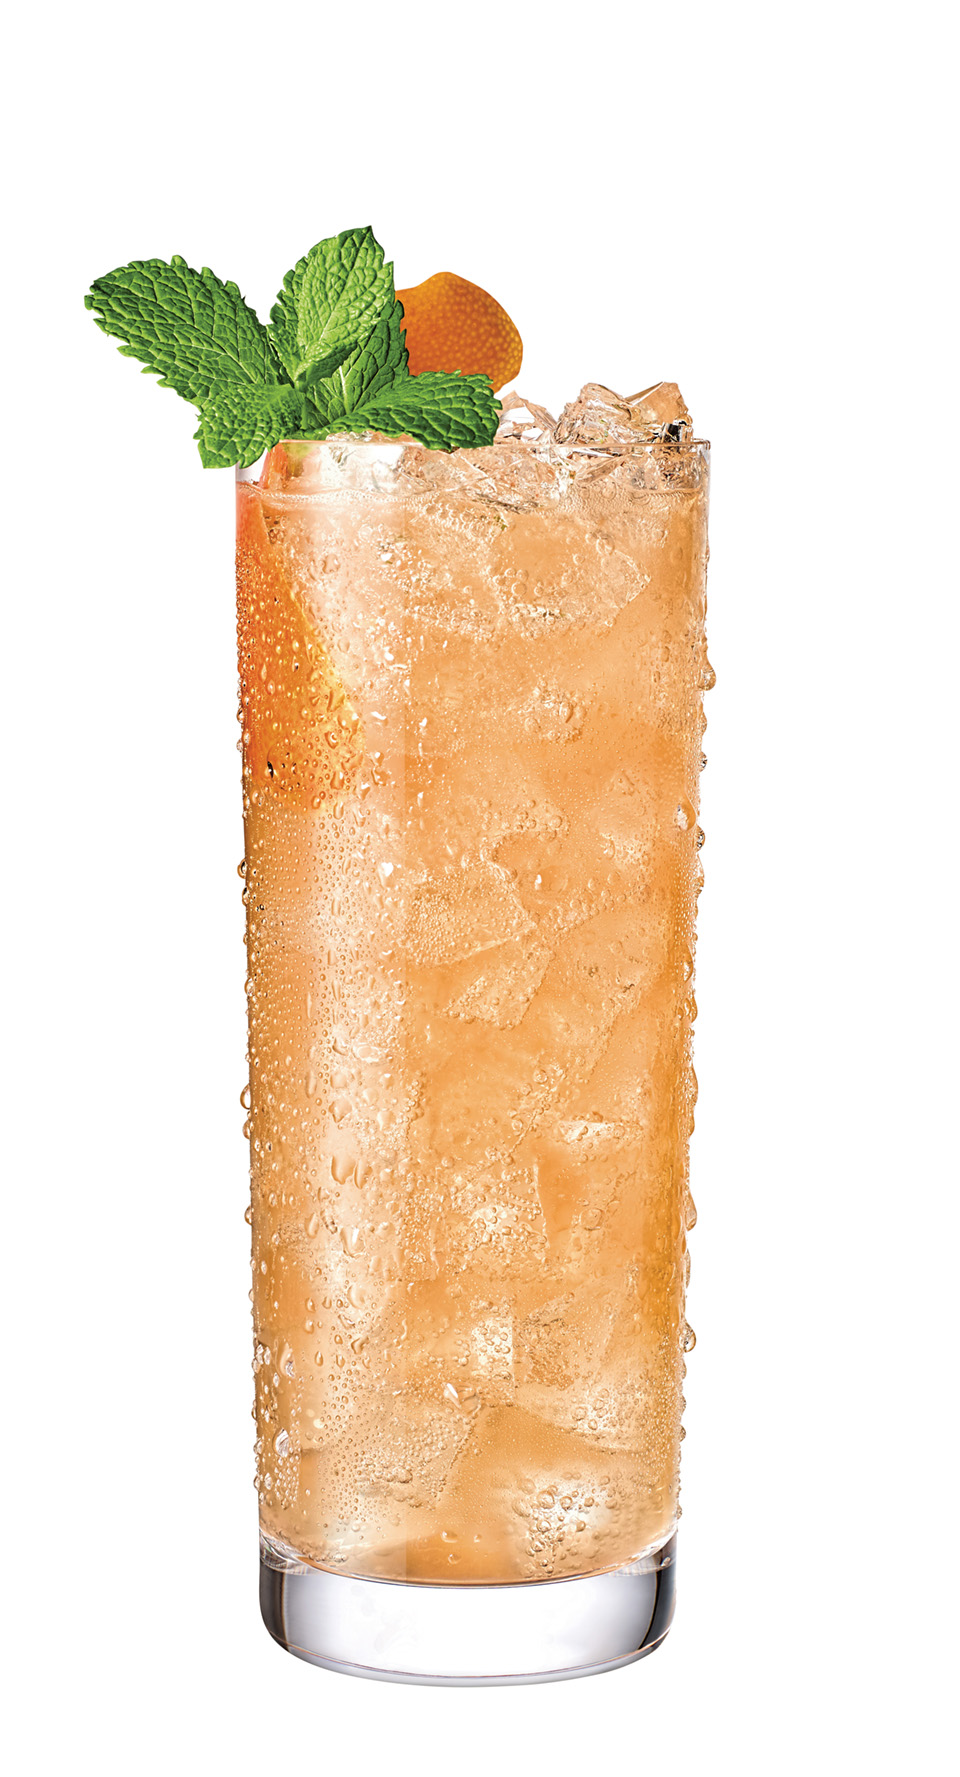 Image of the Cocktail Crush